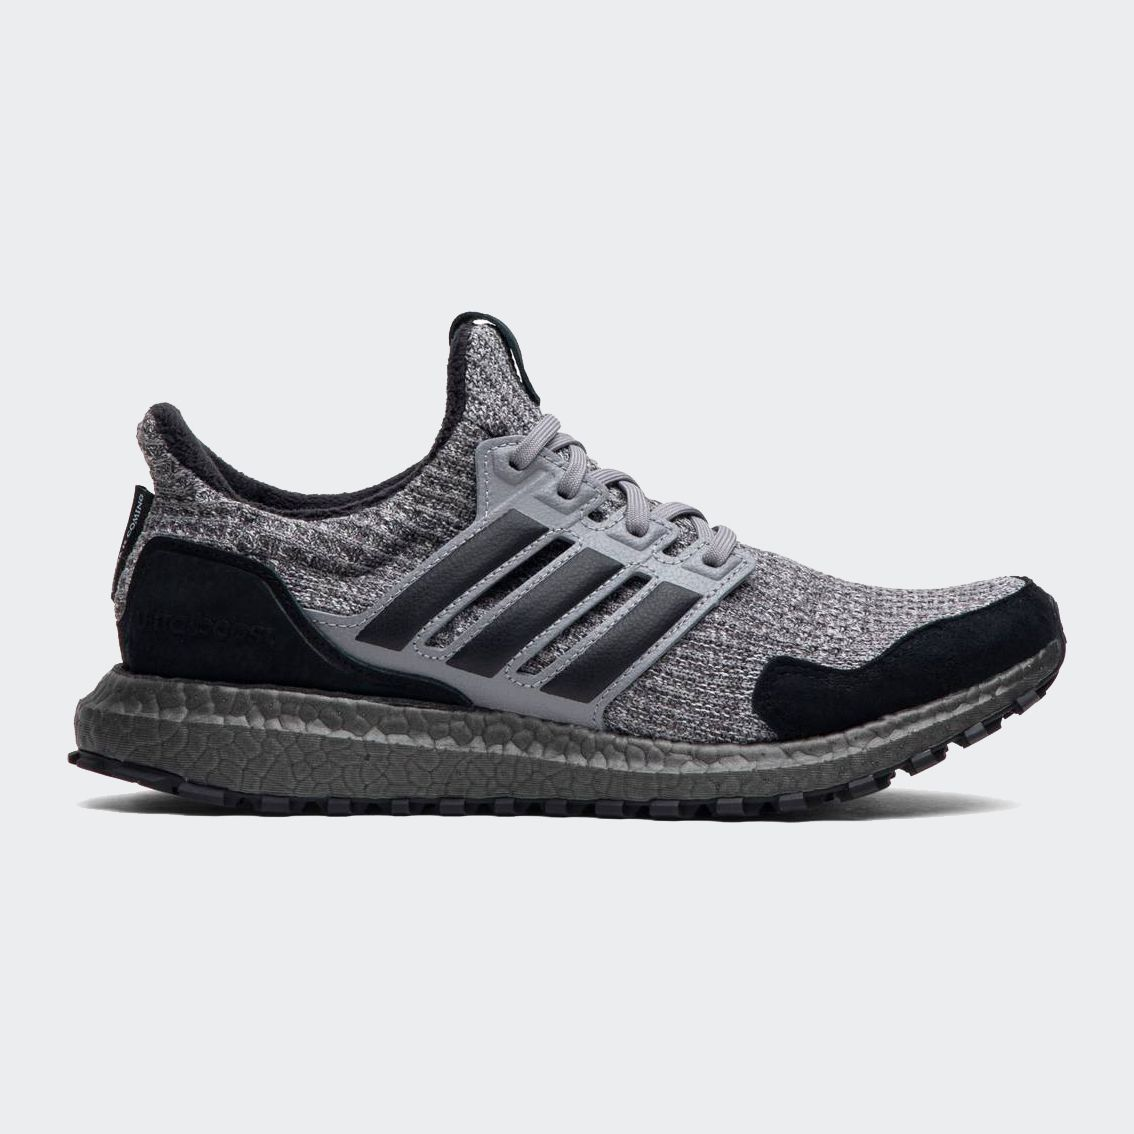 Game of Thrones x adidas UltraBoost 4.0